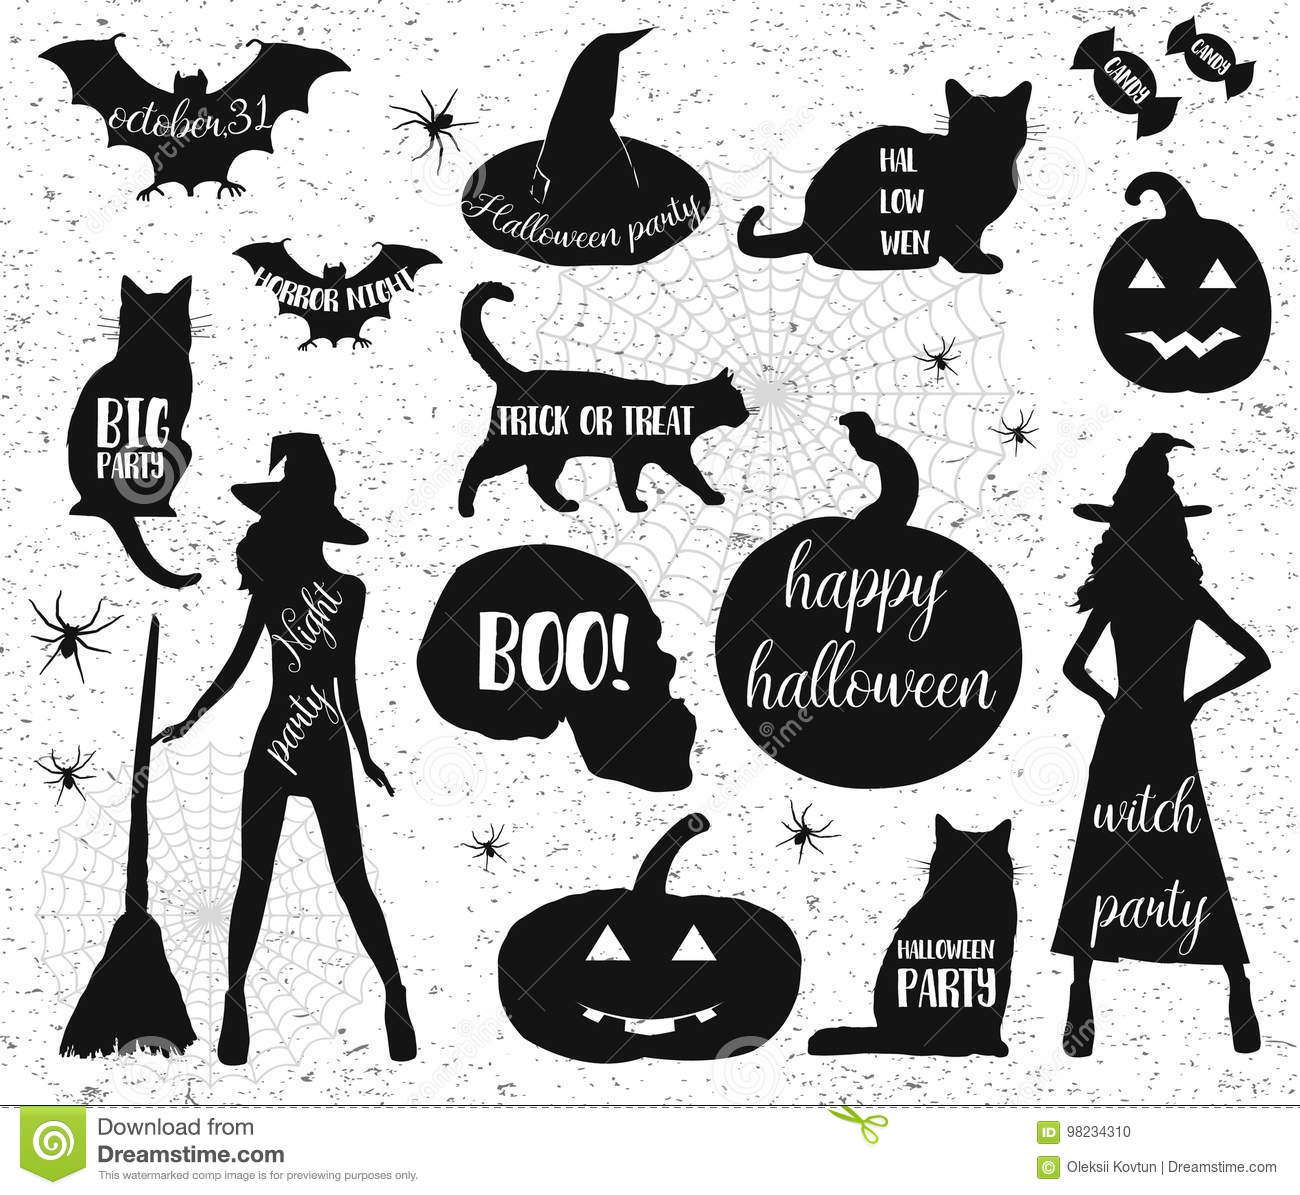 Halloween Trick Or Treat Silhouette.Halloween Silhouettes Witch Pumpkin Black Cat Halloween